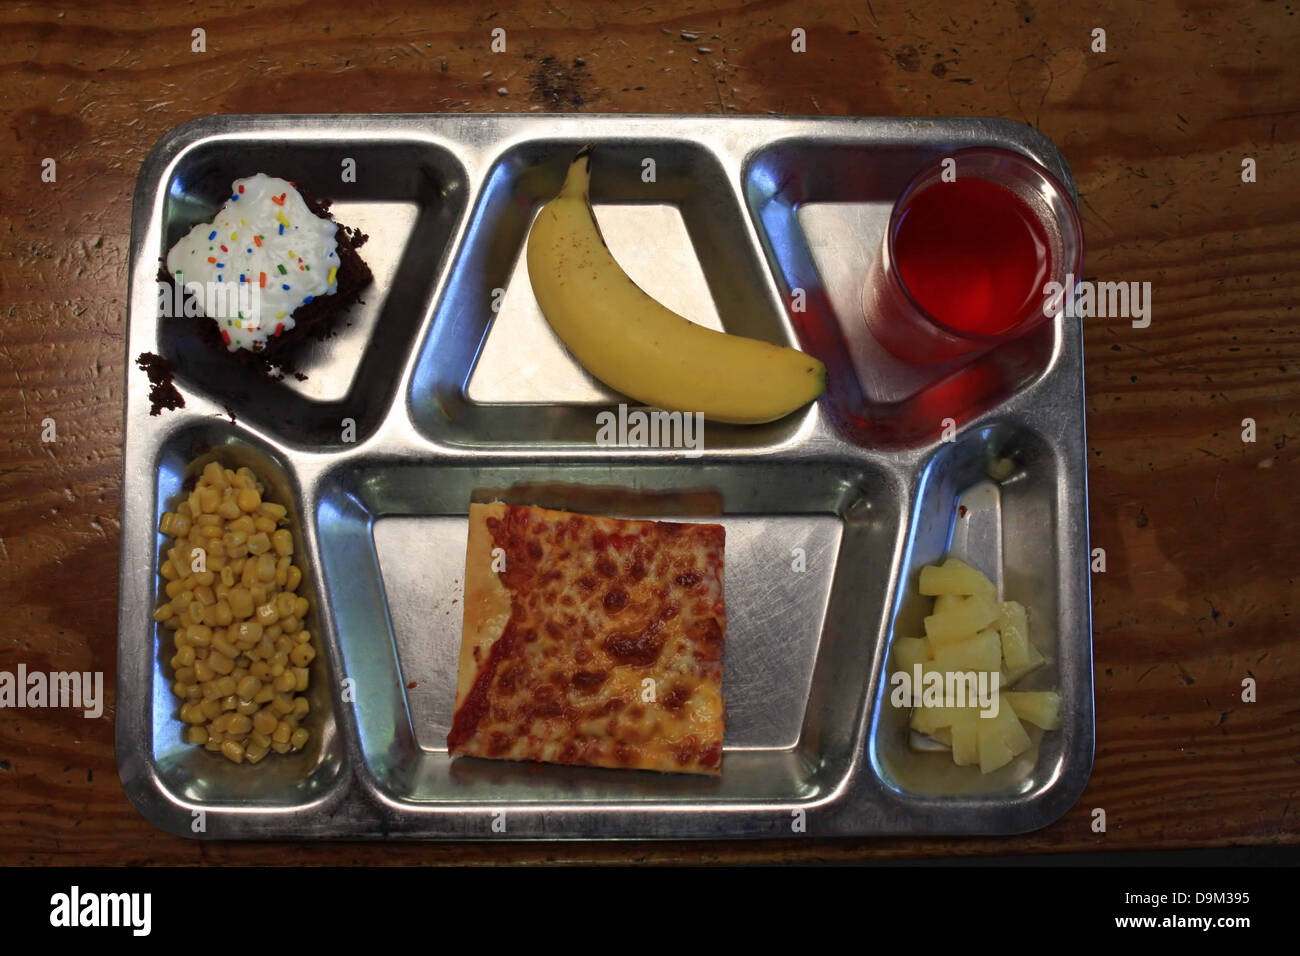 metal silver tray of food, chocolate cake white icing, banana, red drink, corn, square pizza, pineapple pieces, Stock Photo